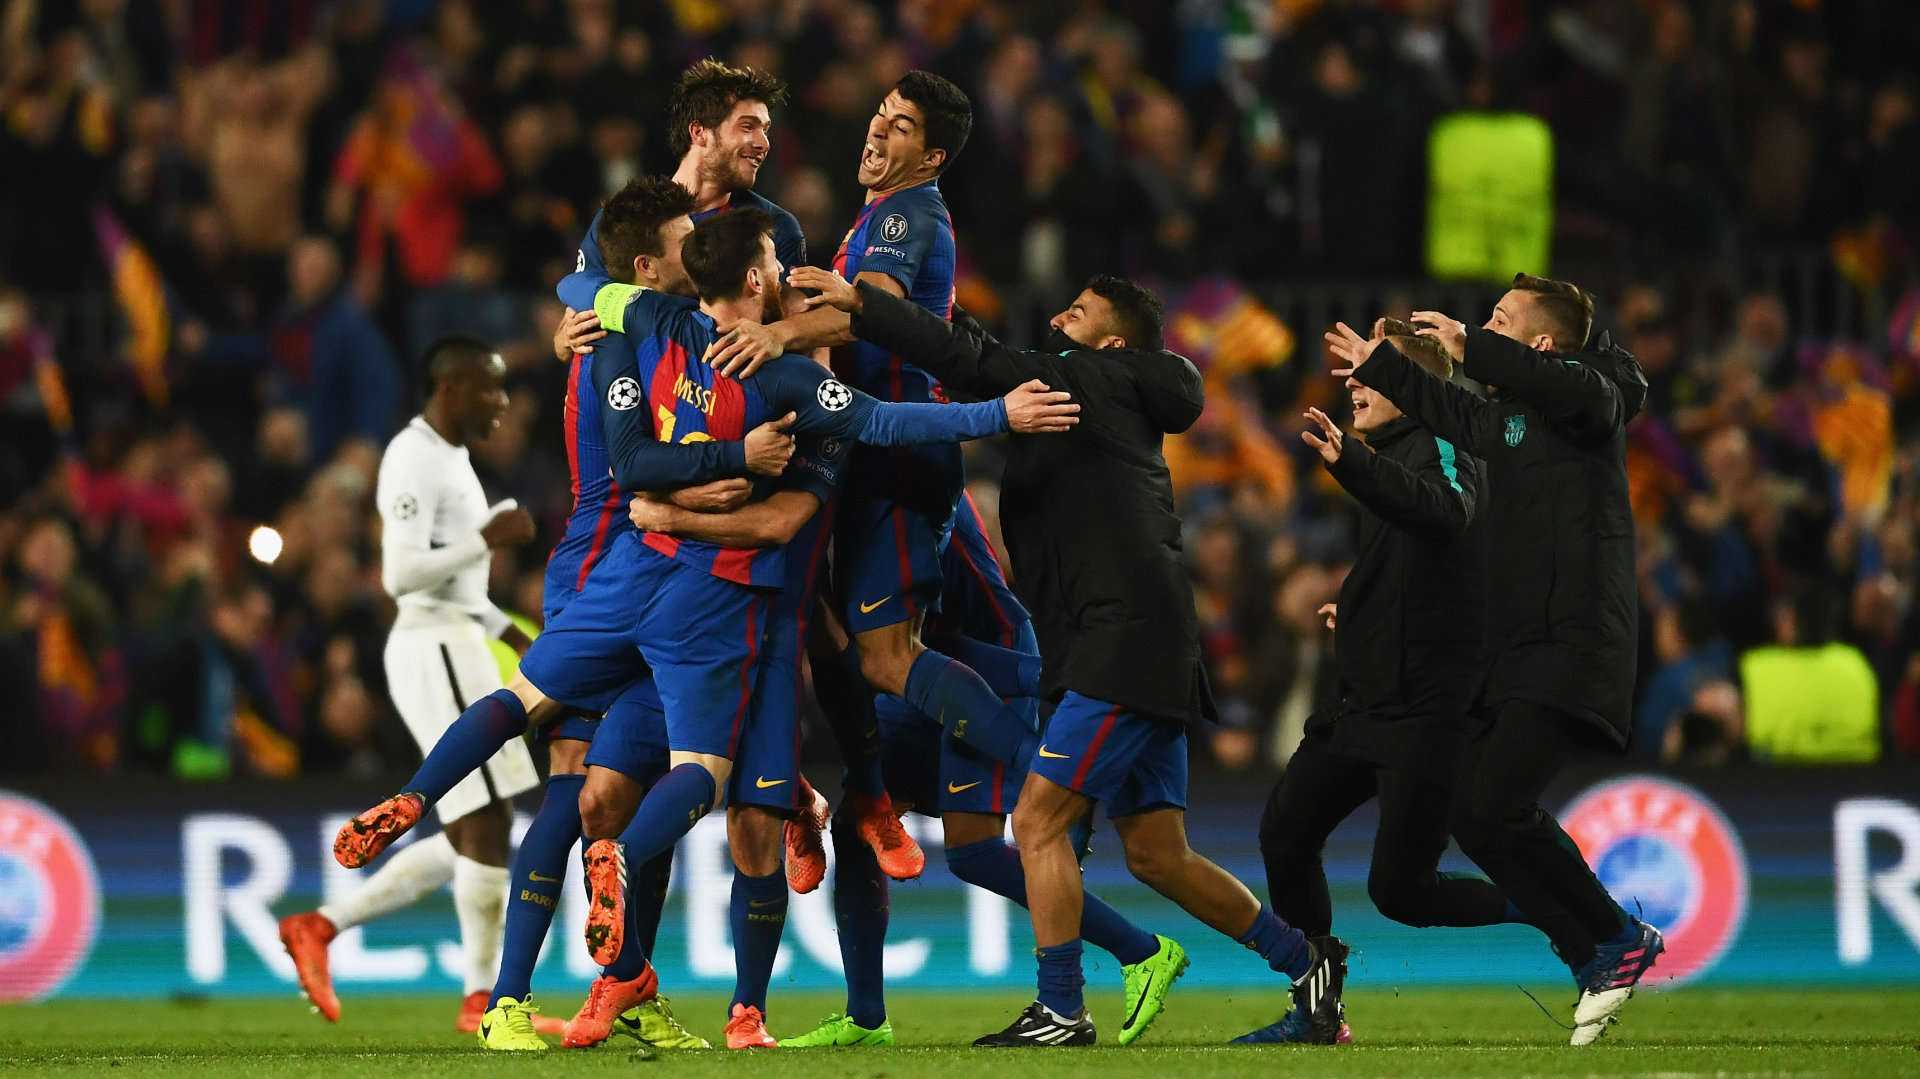 Barcelona's miraculous Champions League comeback means an ...